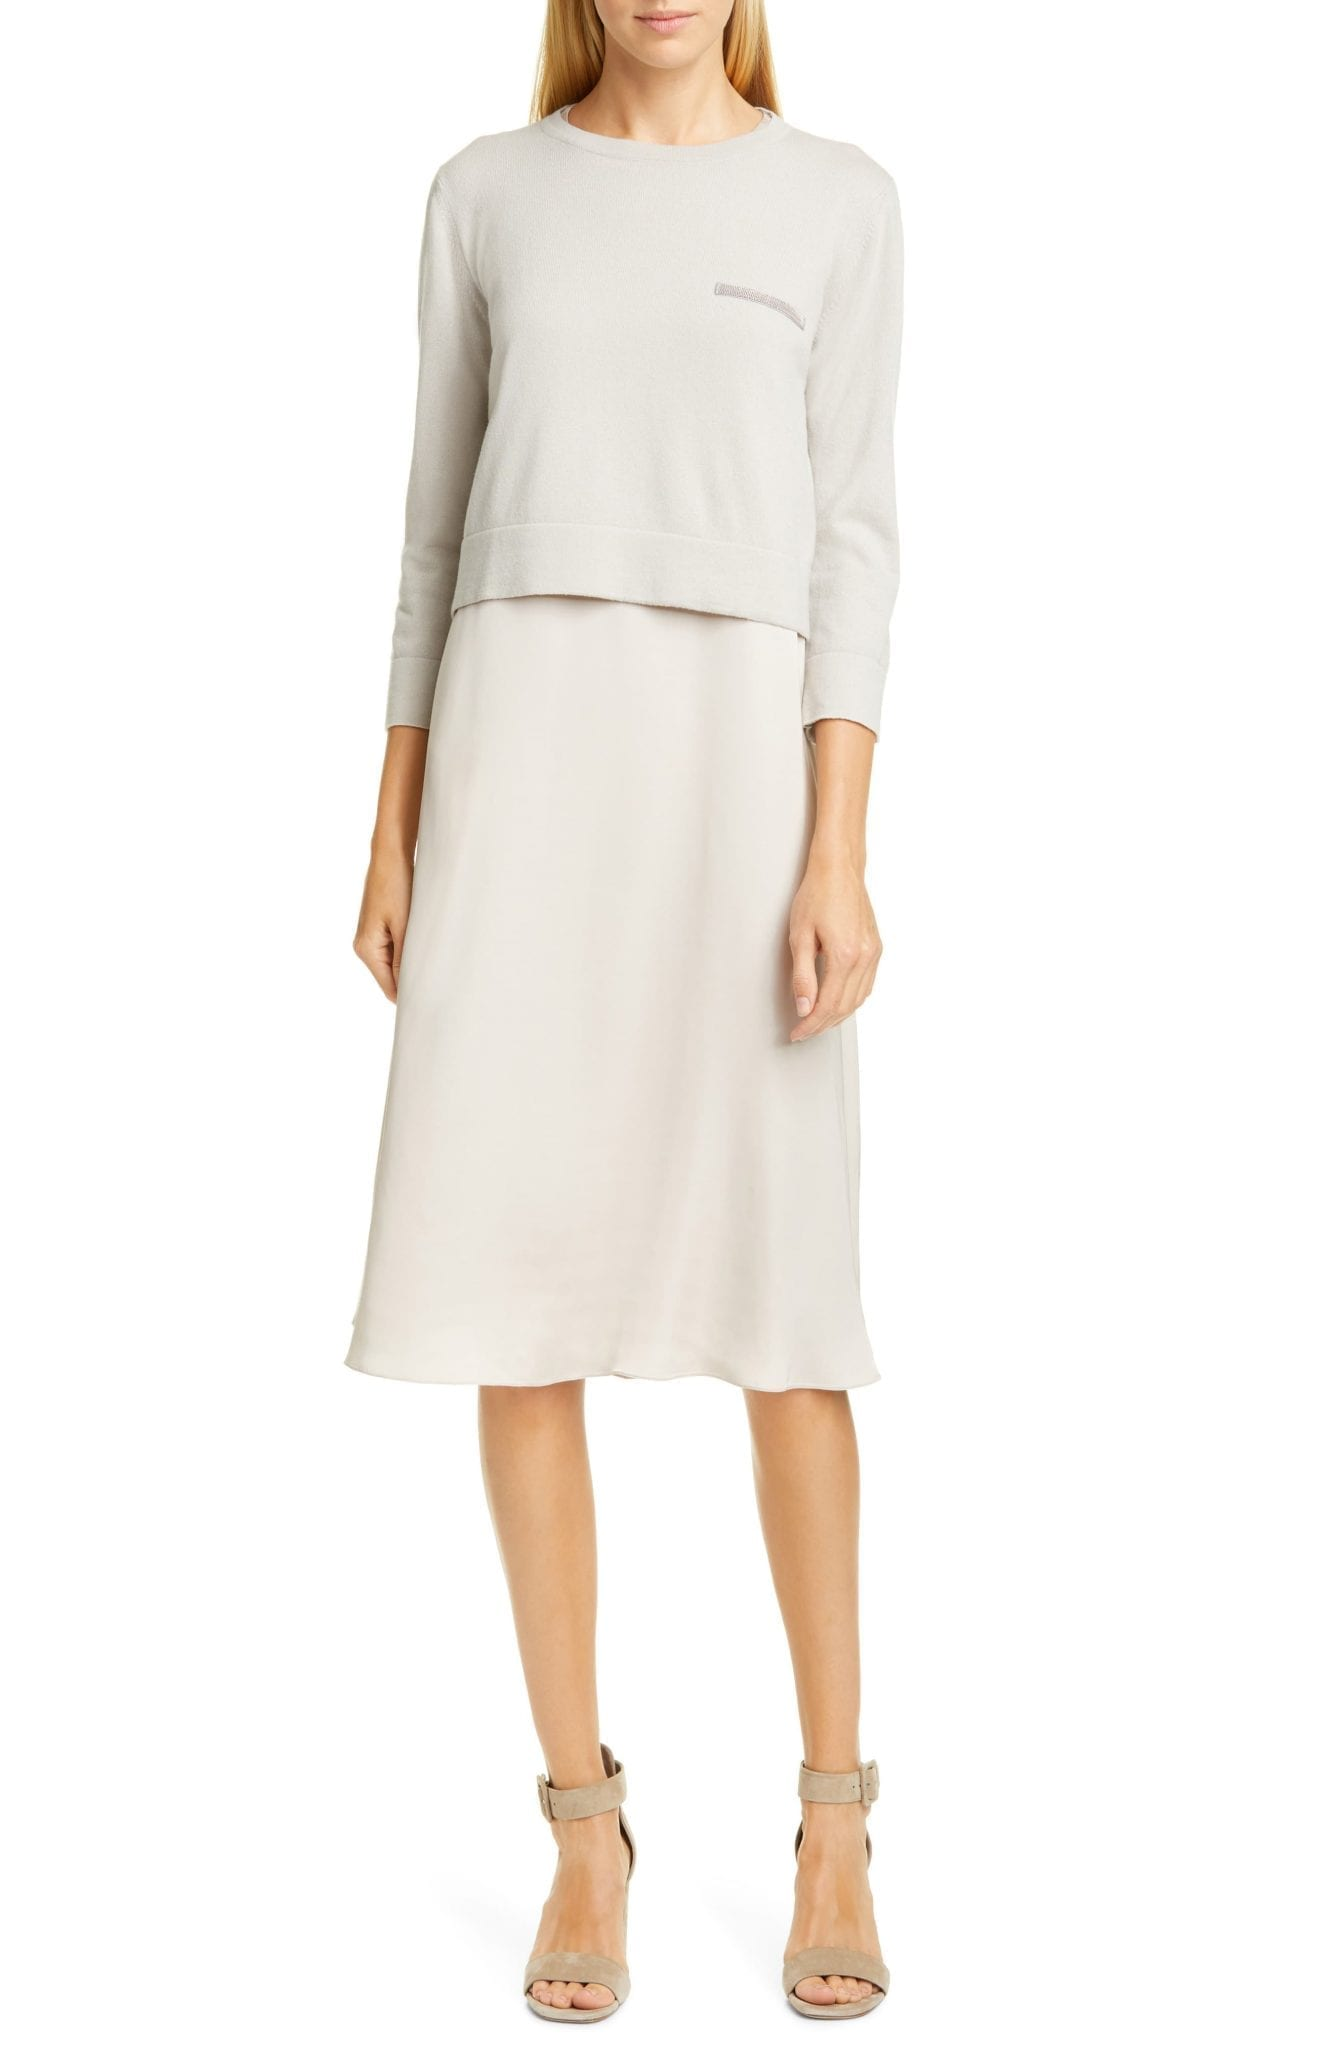 FABIANA FILIPPI Embellished Cashmere Sweater Crepe Dress